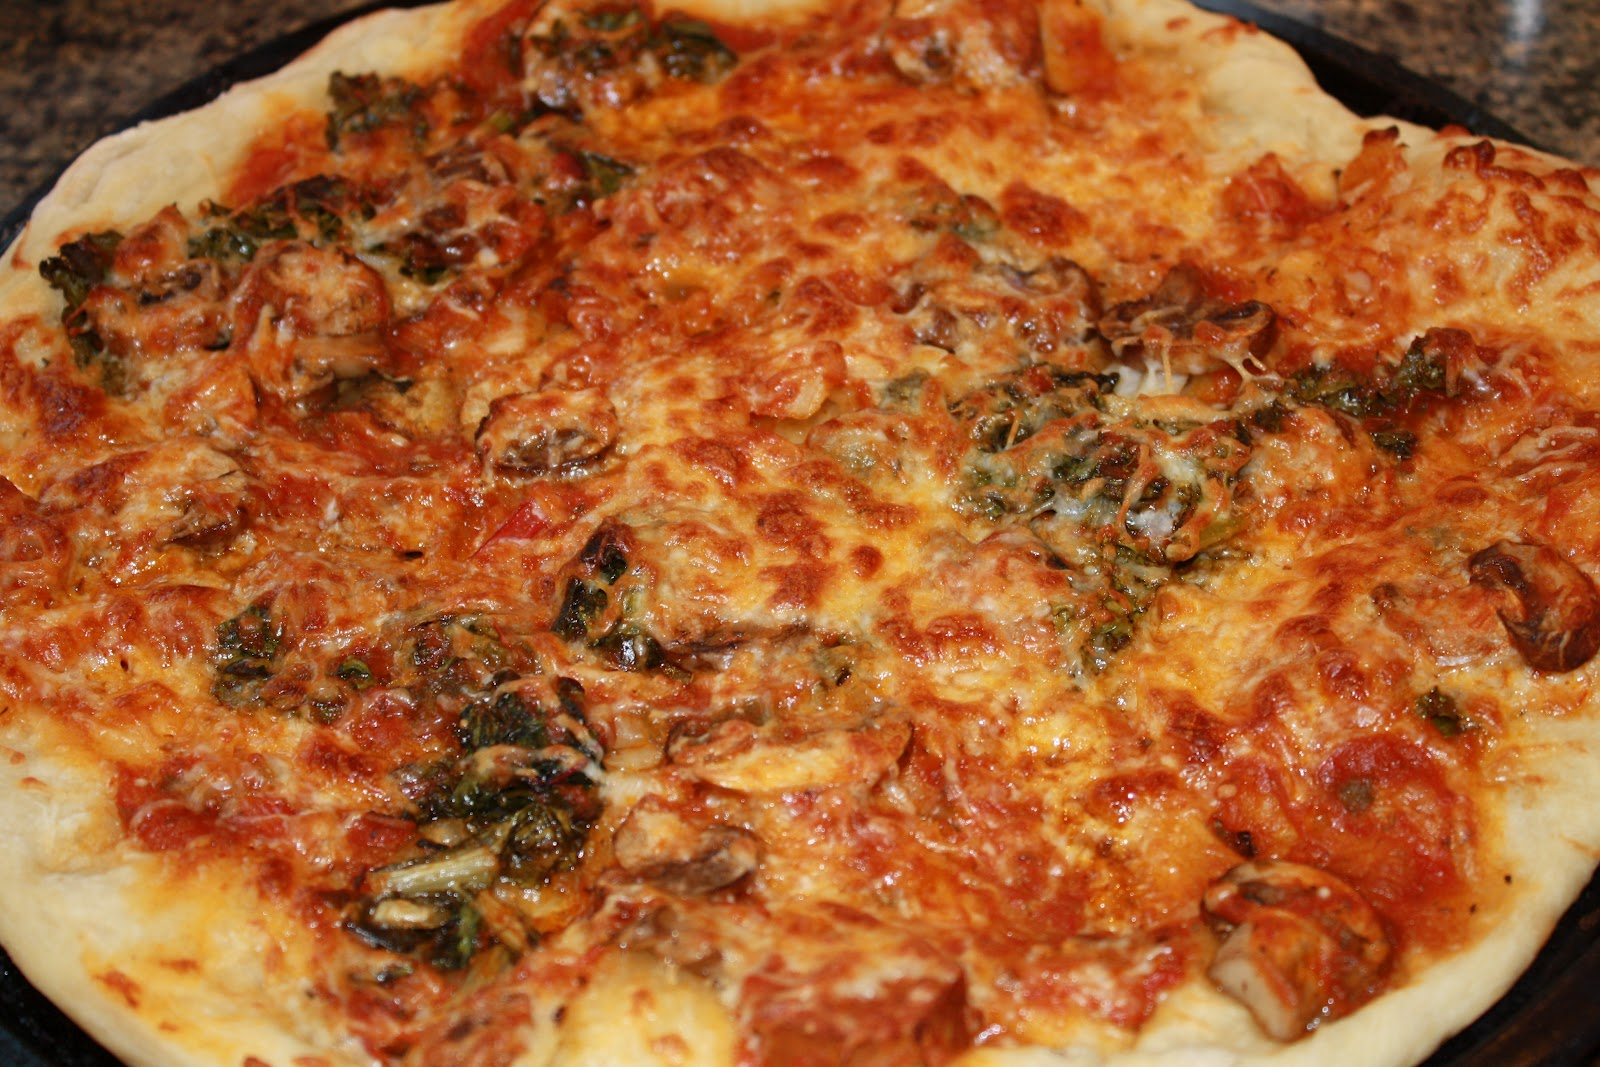 ... and Garden: Photos Of Pizza Made With Jim Lahey's No Knead Pizza Dough